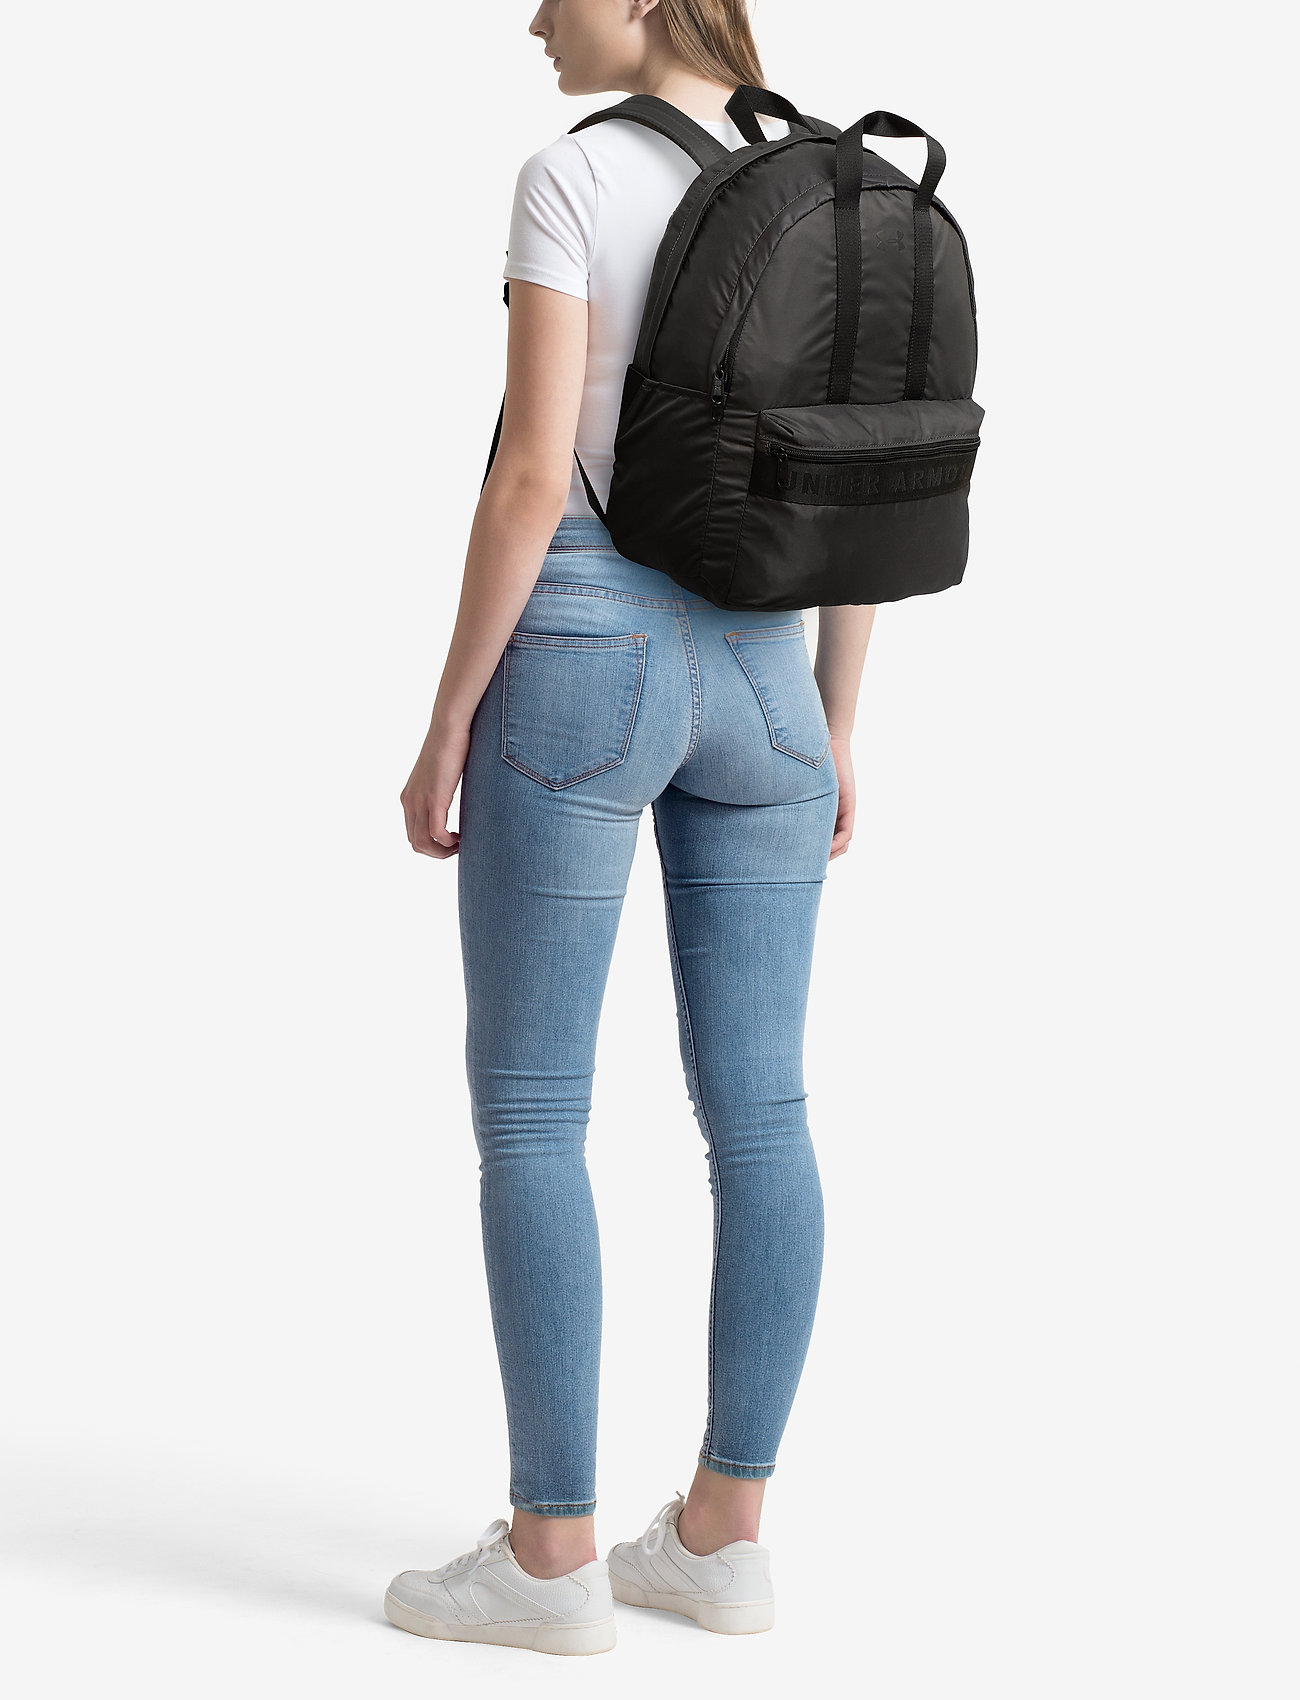 Under Armour Favorite Backpack